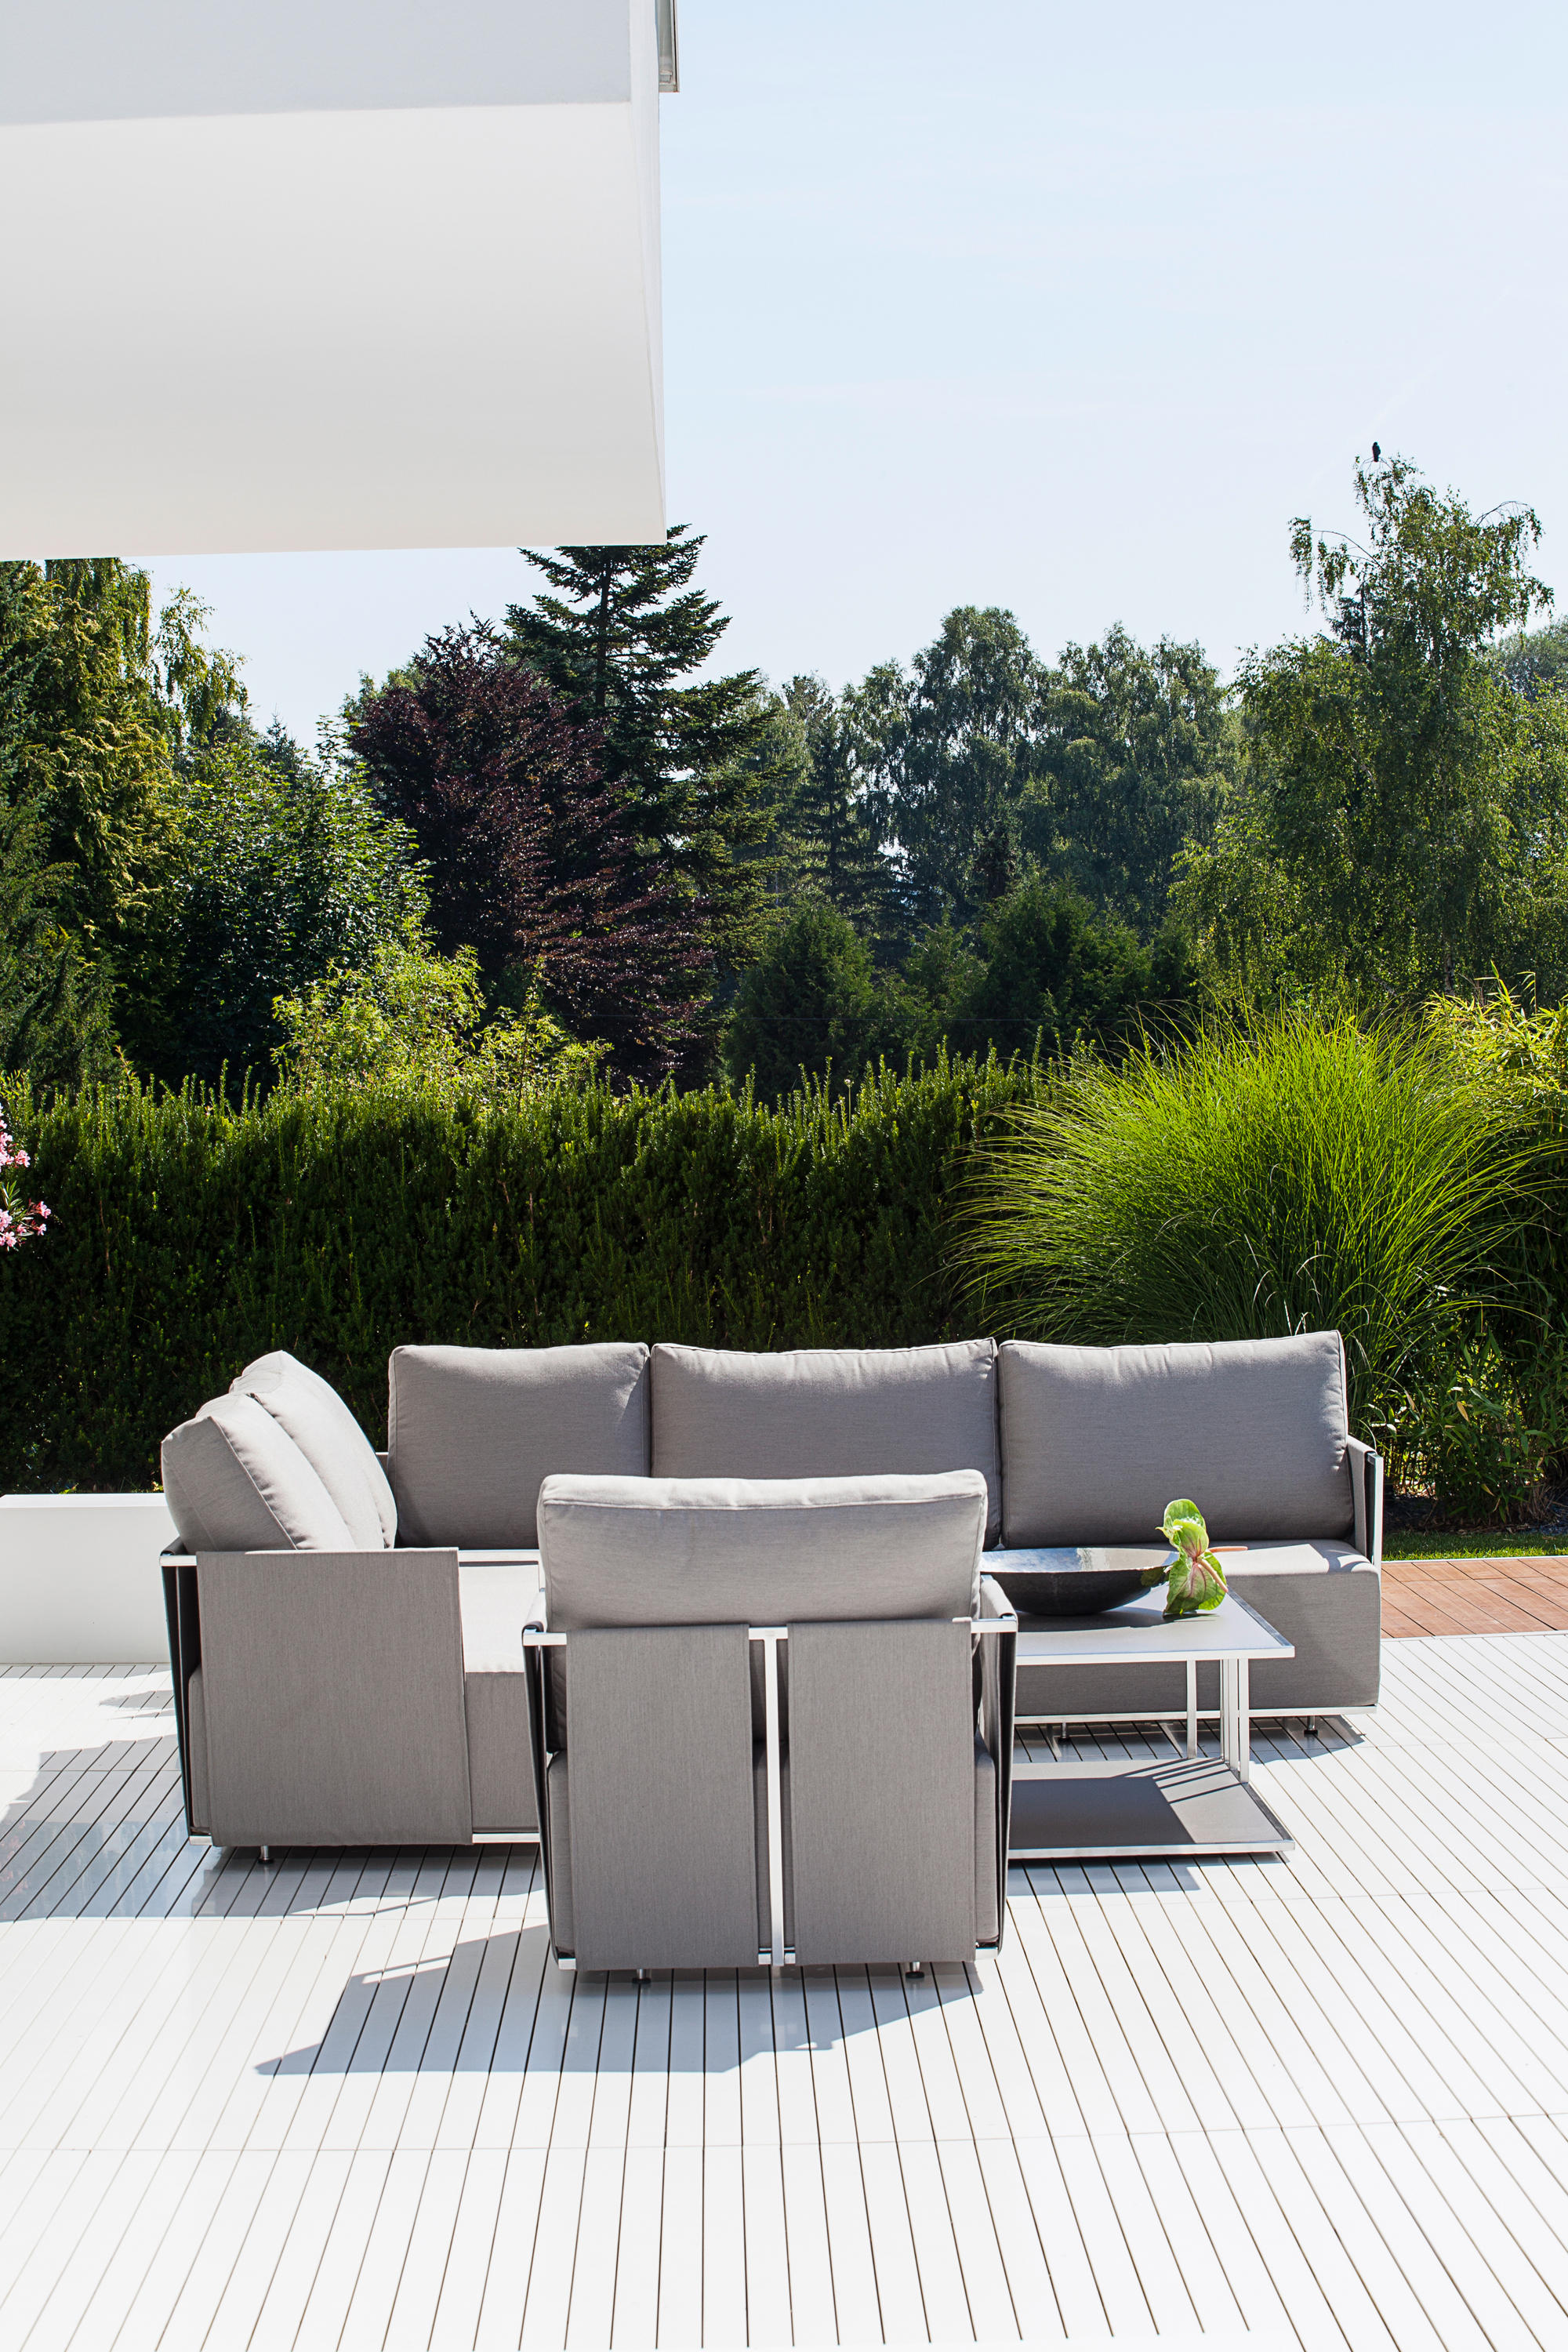 suite cantilever chair garden chairs from fischer m bel. Black Bedroom Furniture Sets. Home Design Ideas